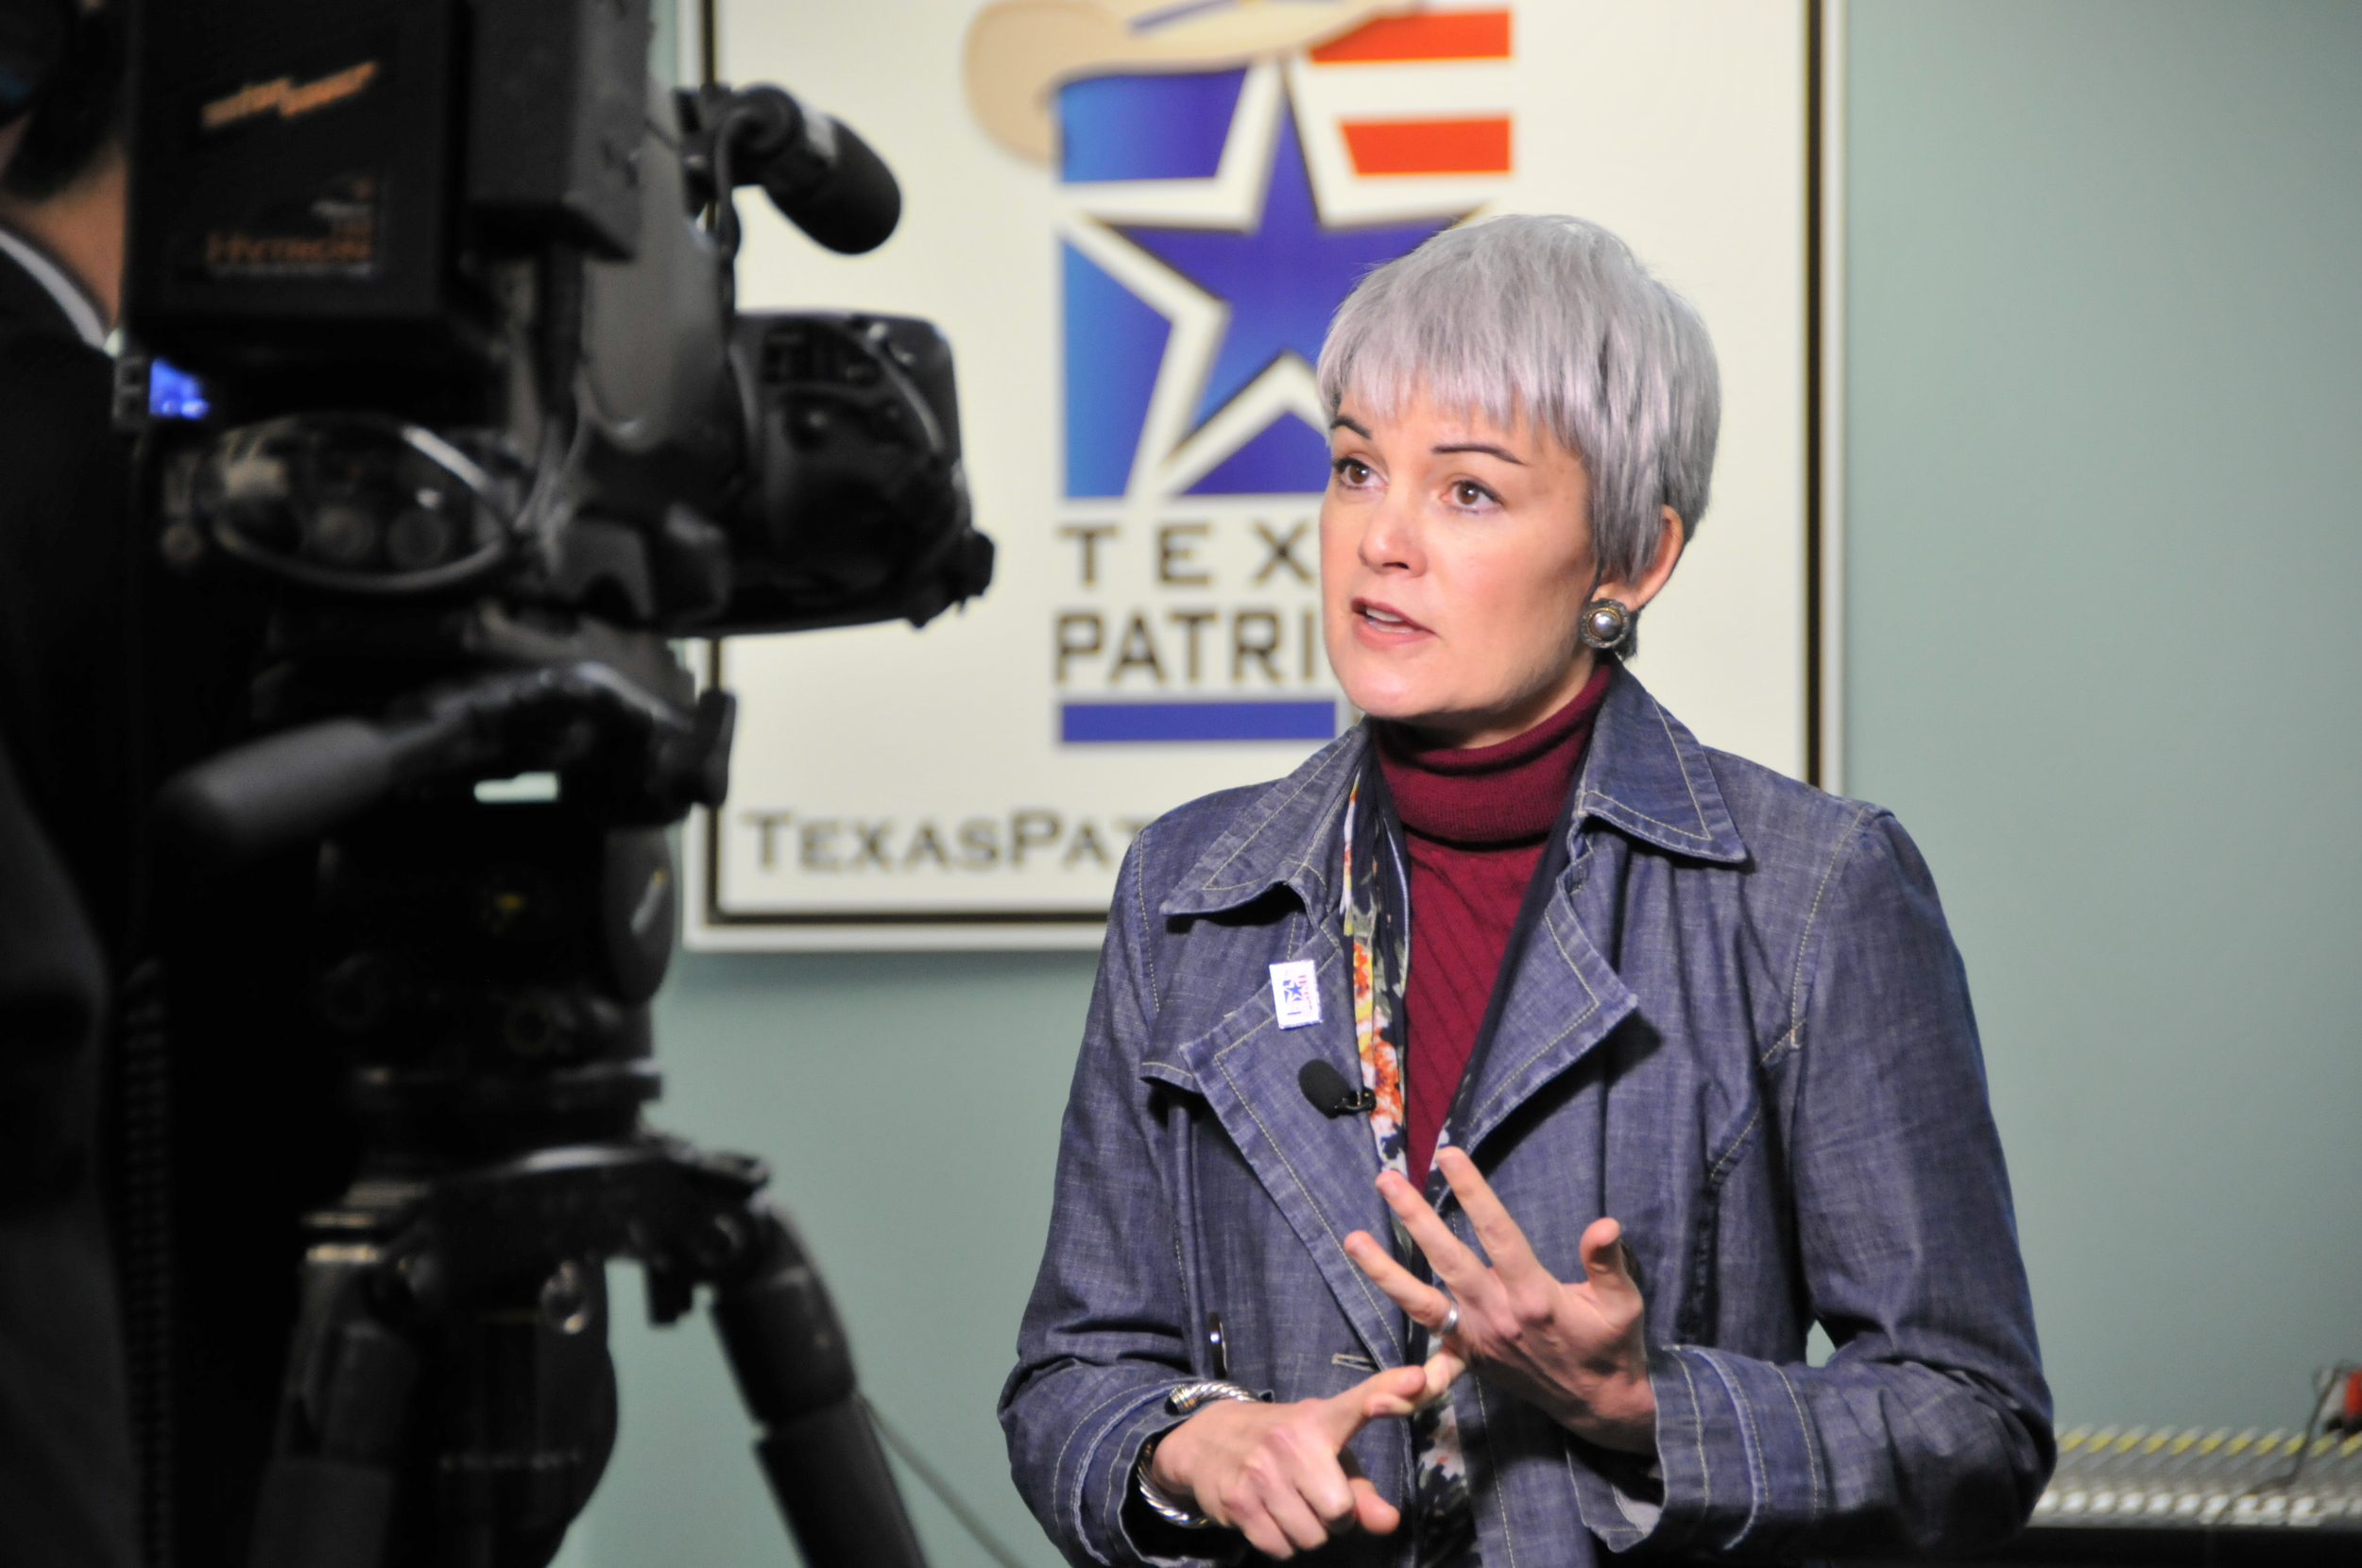 Texas Patriots PAC President Julie Turner being interviewed by CBN for a story about the success of the Tea Party movement in Texas.